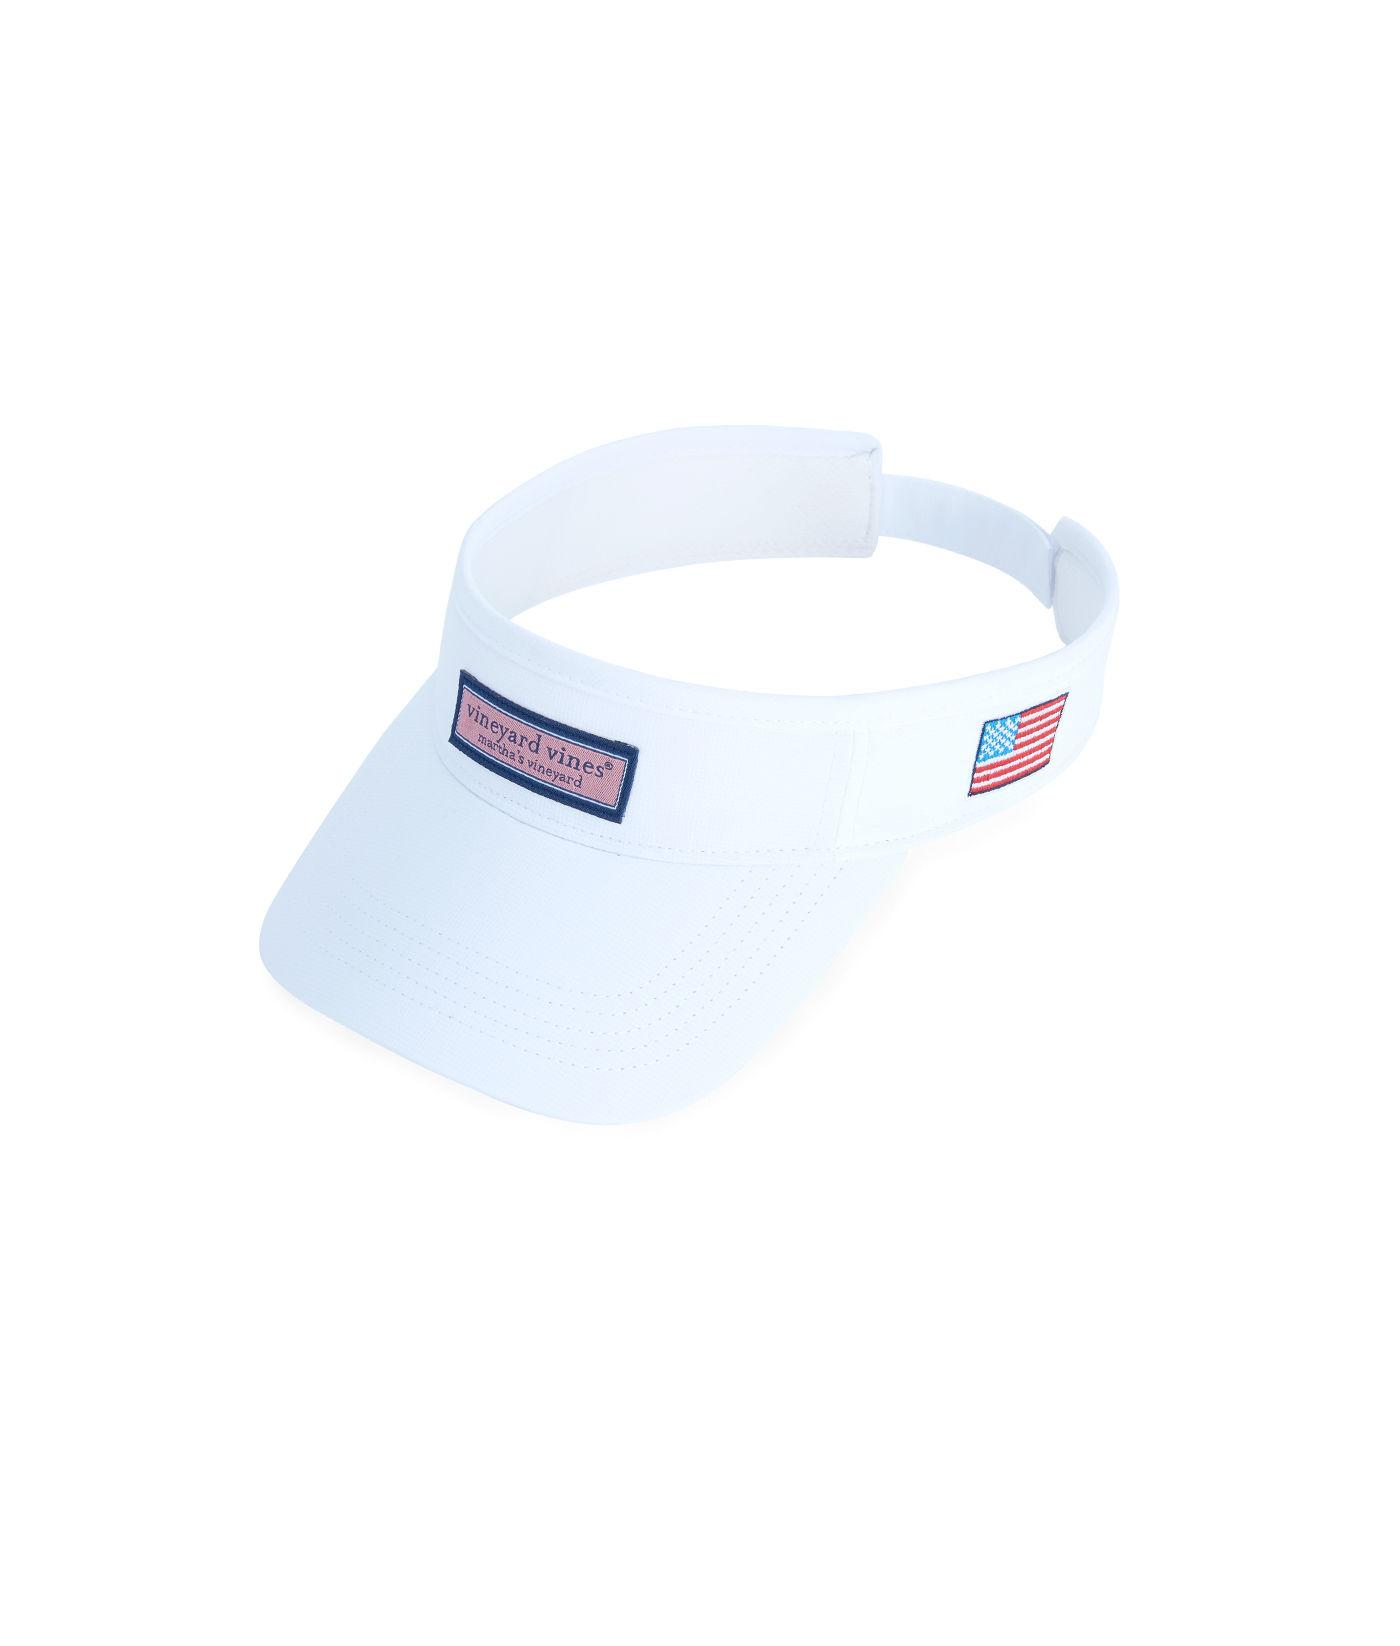 f6983ffa Lyst - Vineyard Vines Low Profile Logo Box Visor in White for Men